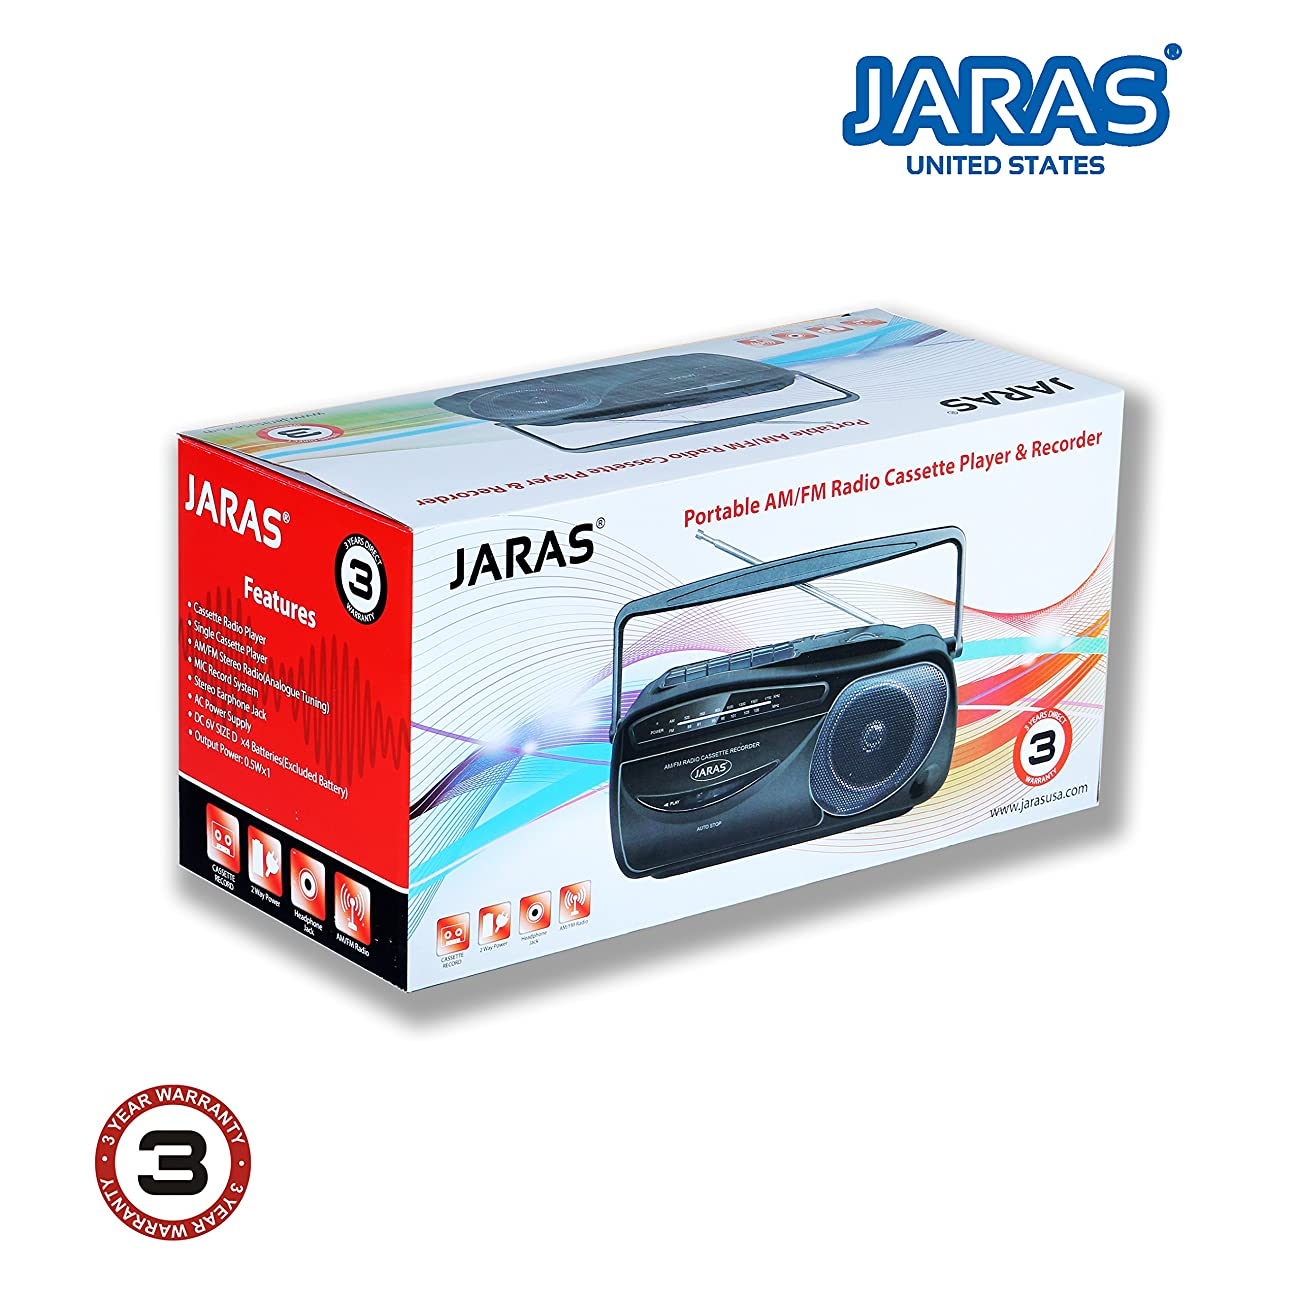 Jaras JJ-2618 Limited Edition Portable Boombox Tape Cassette Player/recorder with AM/FM Radio Stereo Speakers & Headphone Jack 5